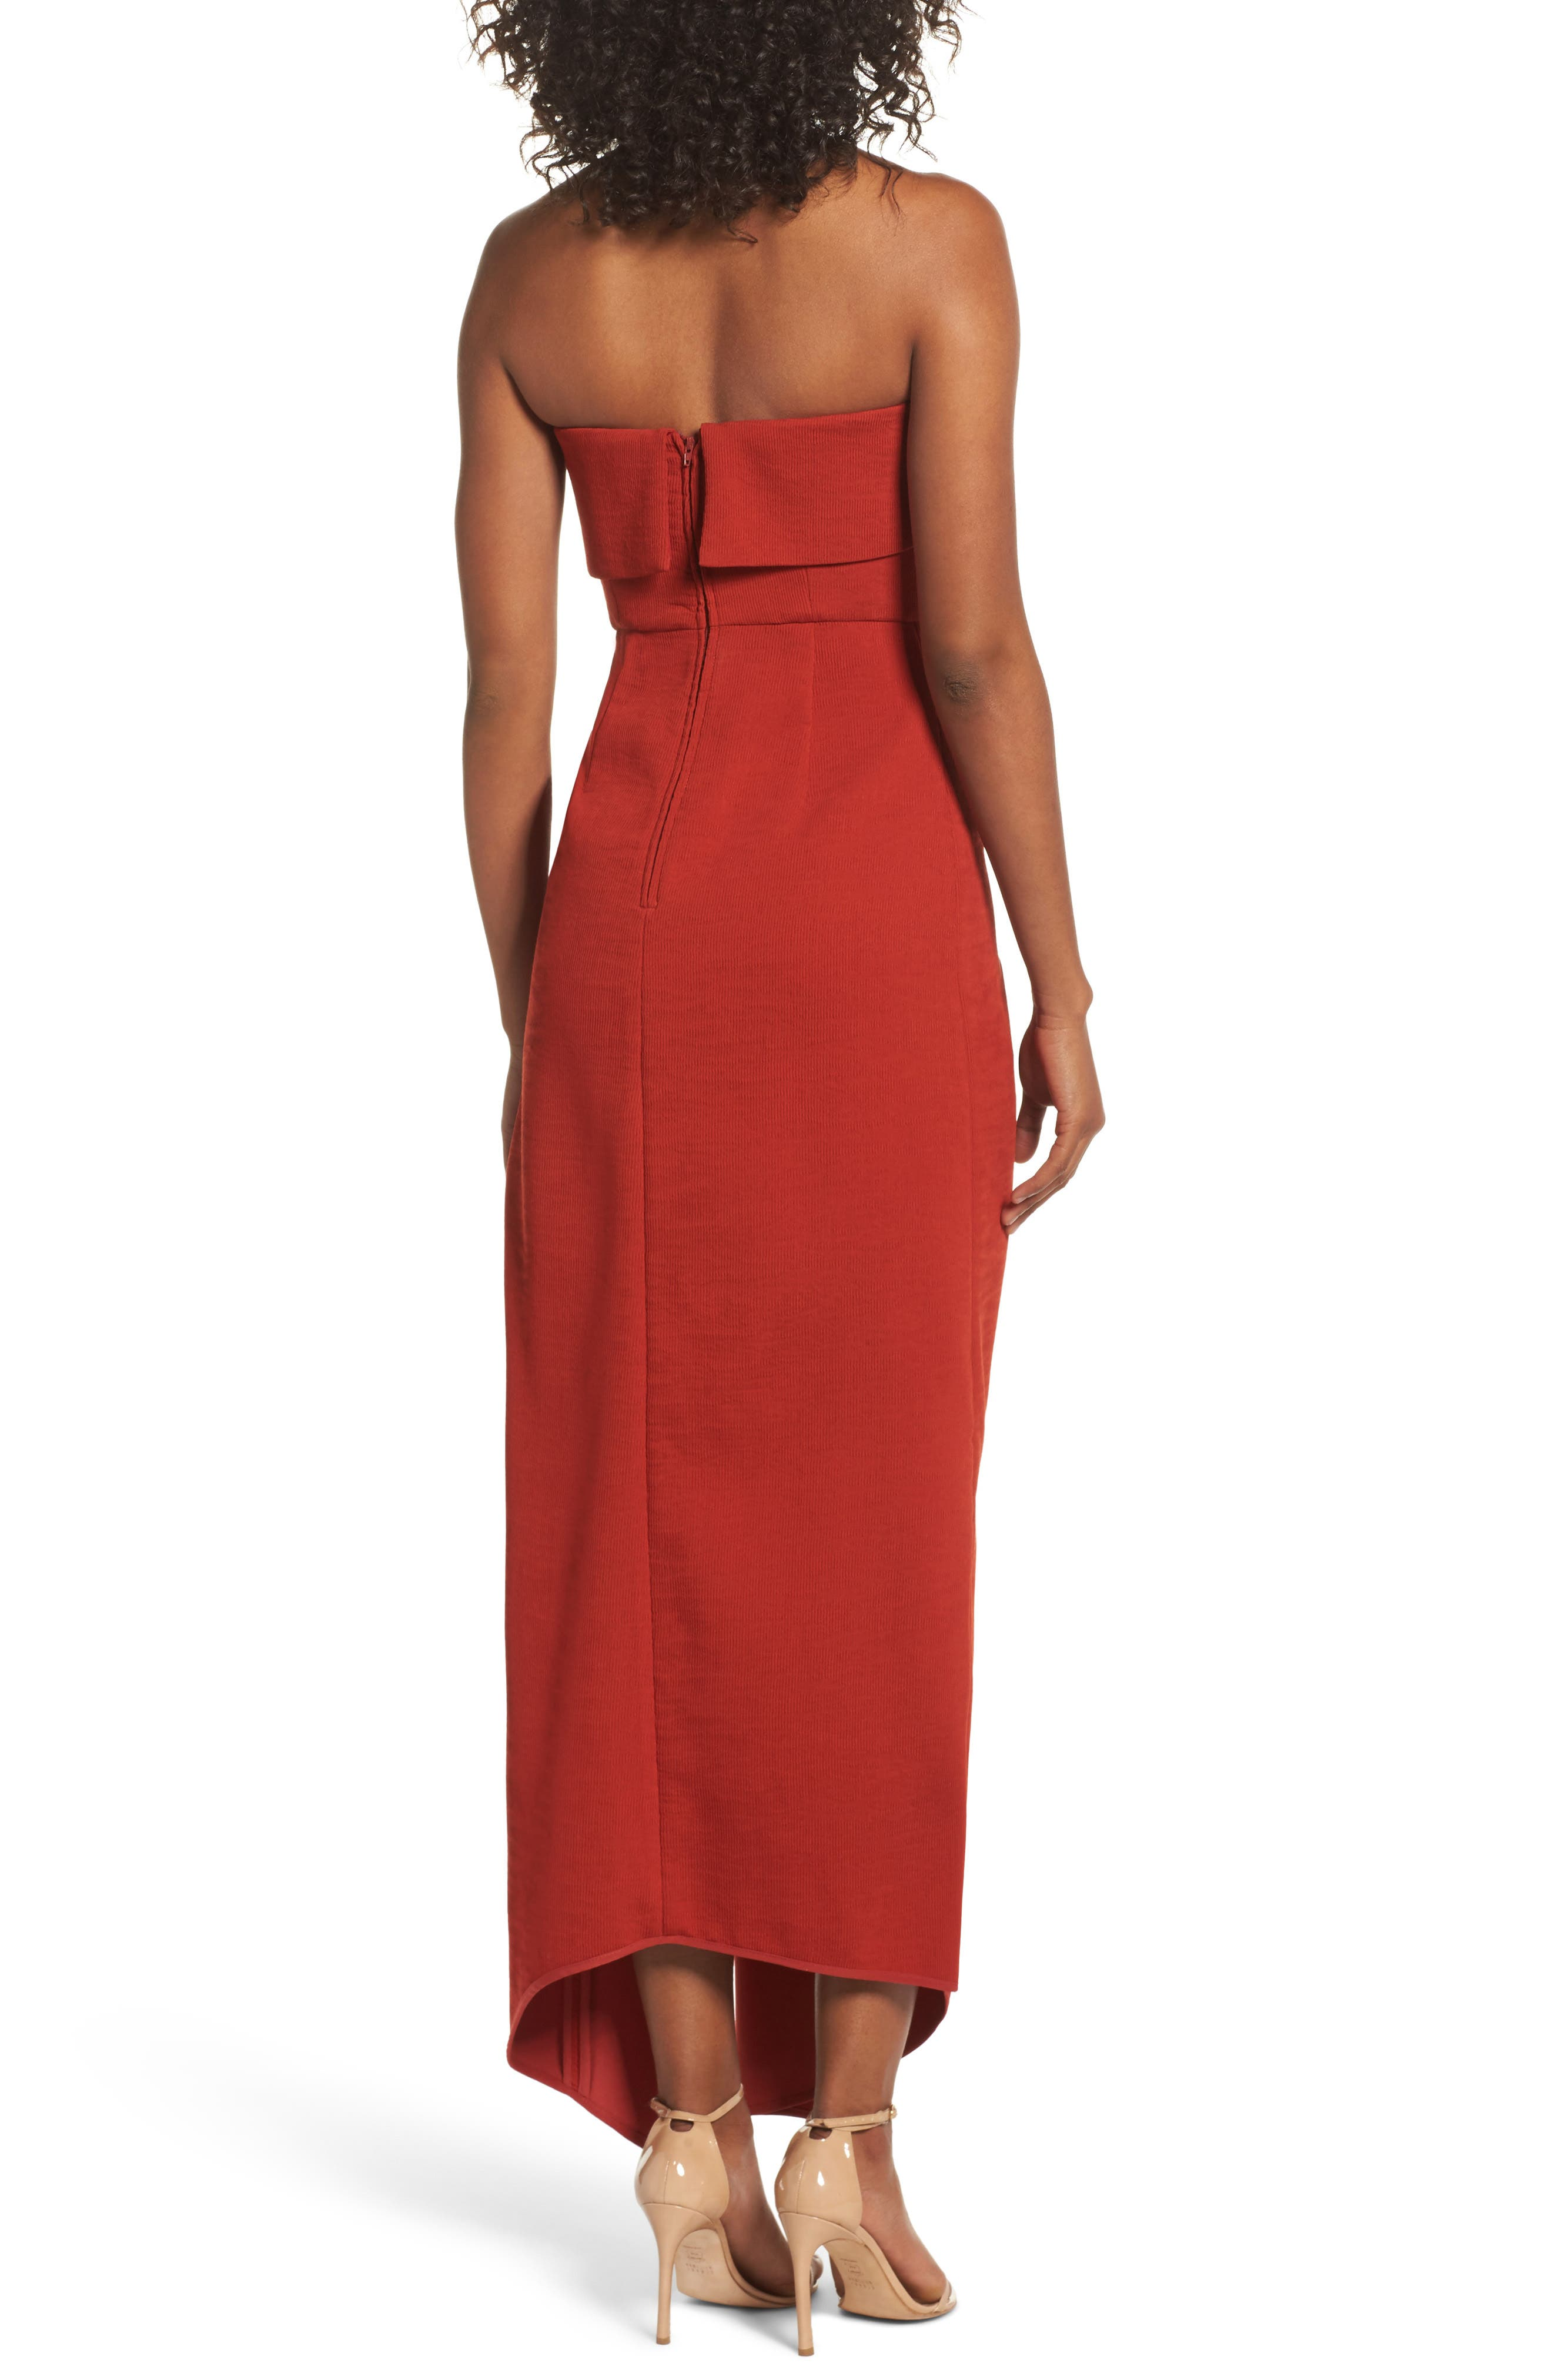 Fluidity Strapless Maxi Dress,                             Alternate thumbnail 3, color,                             Red